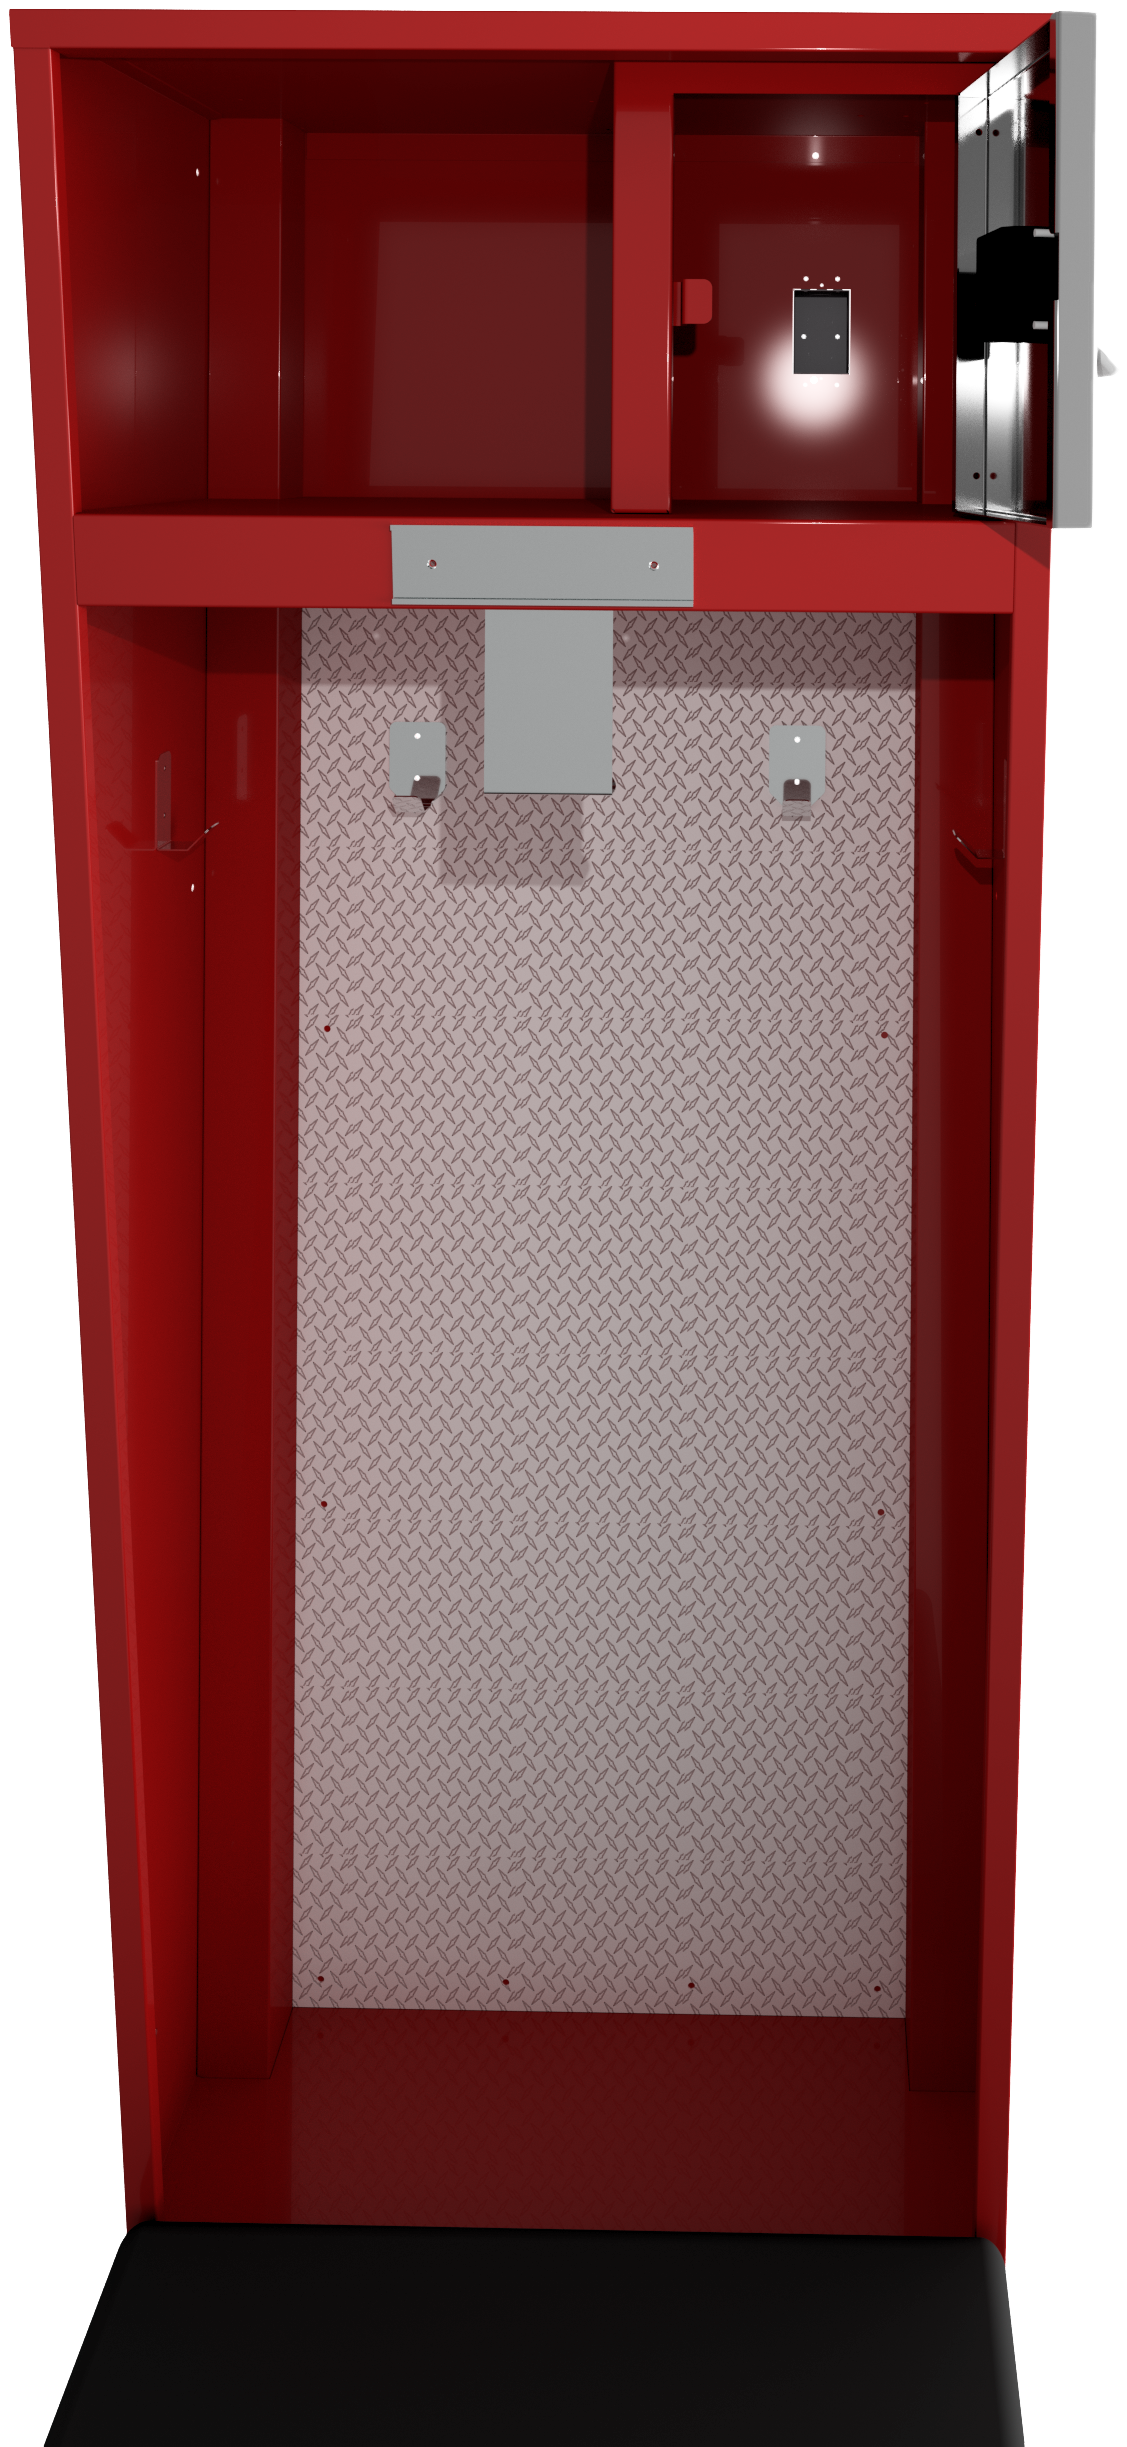 27x24x86-1 Col Front-Door Open render